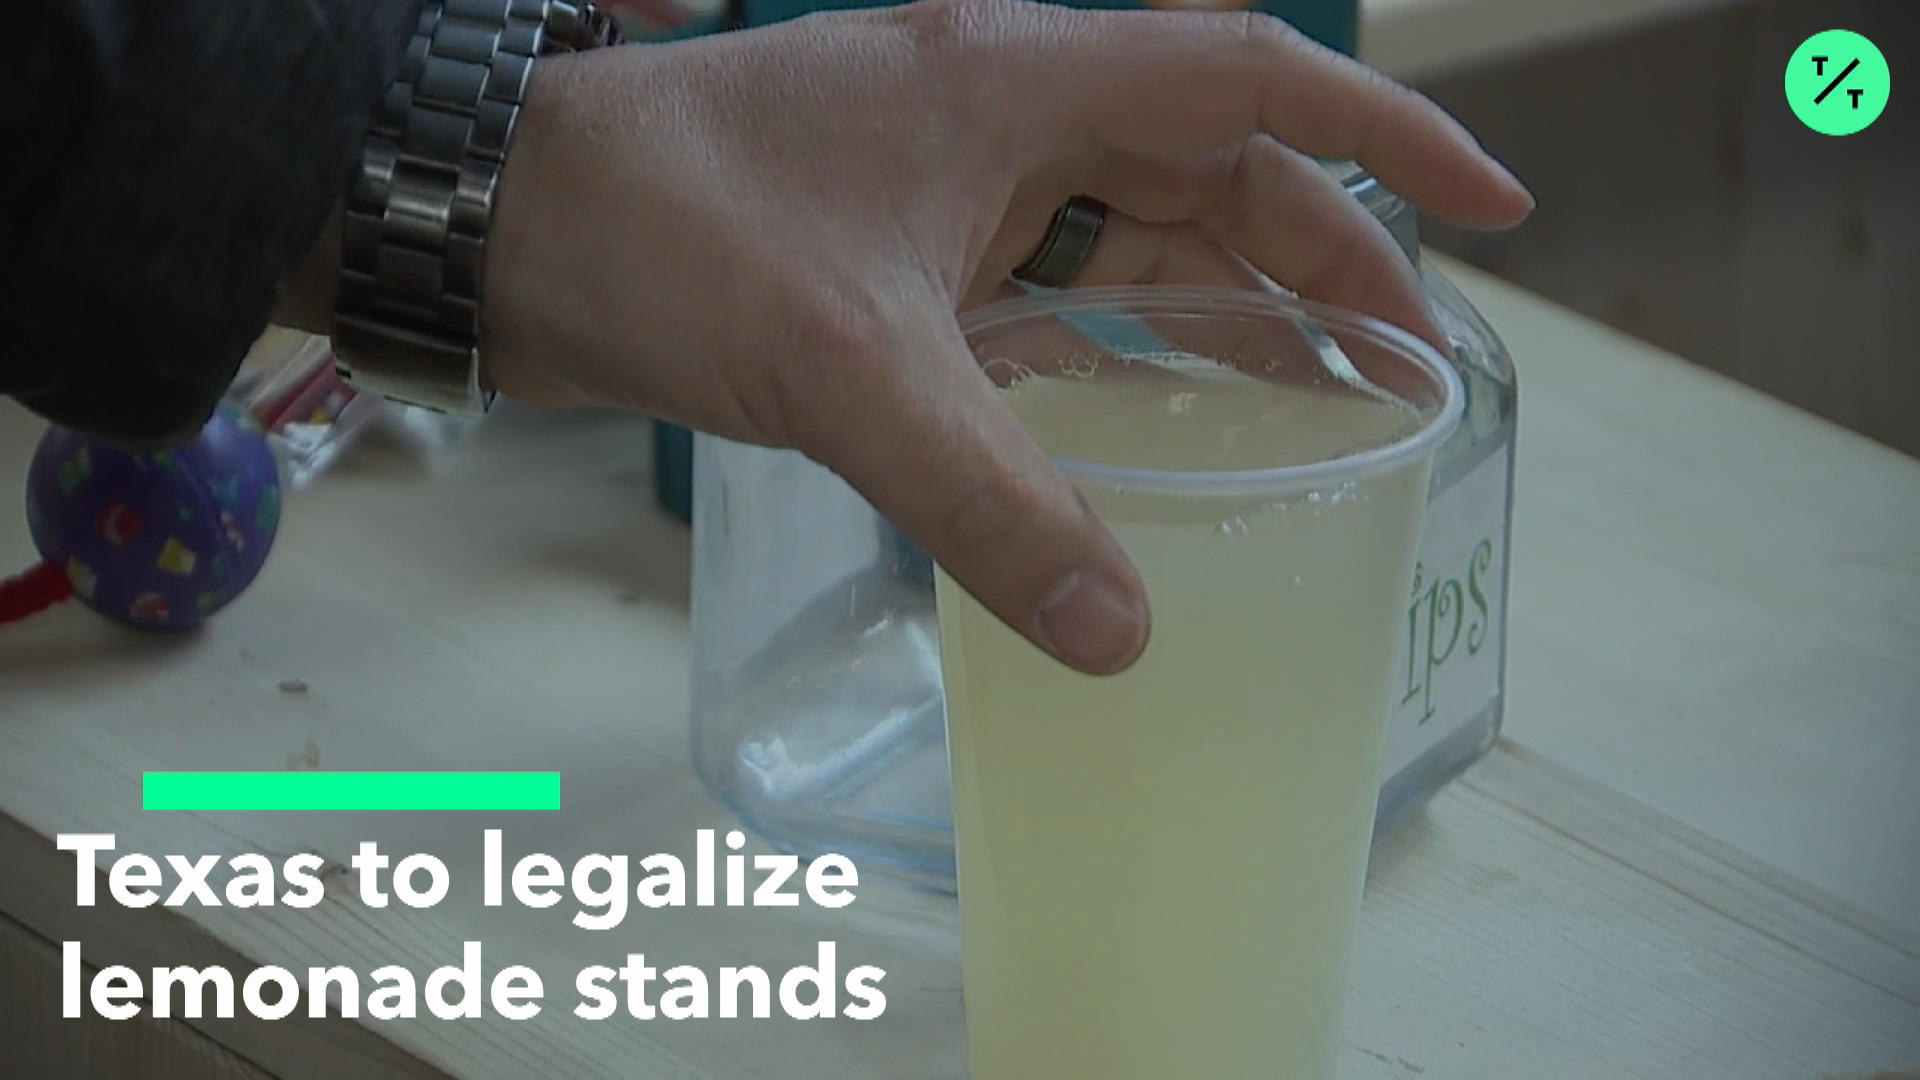 Texas to Legalize Lemonade Stands